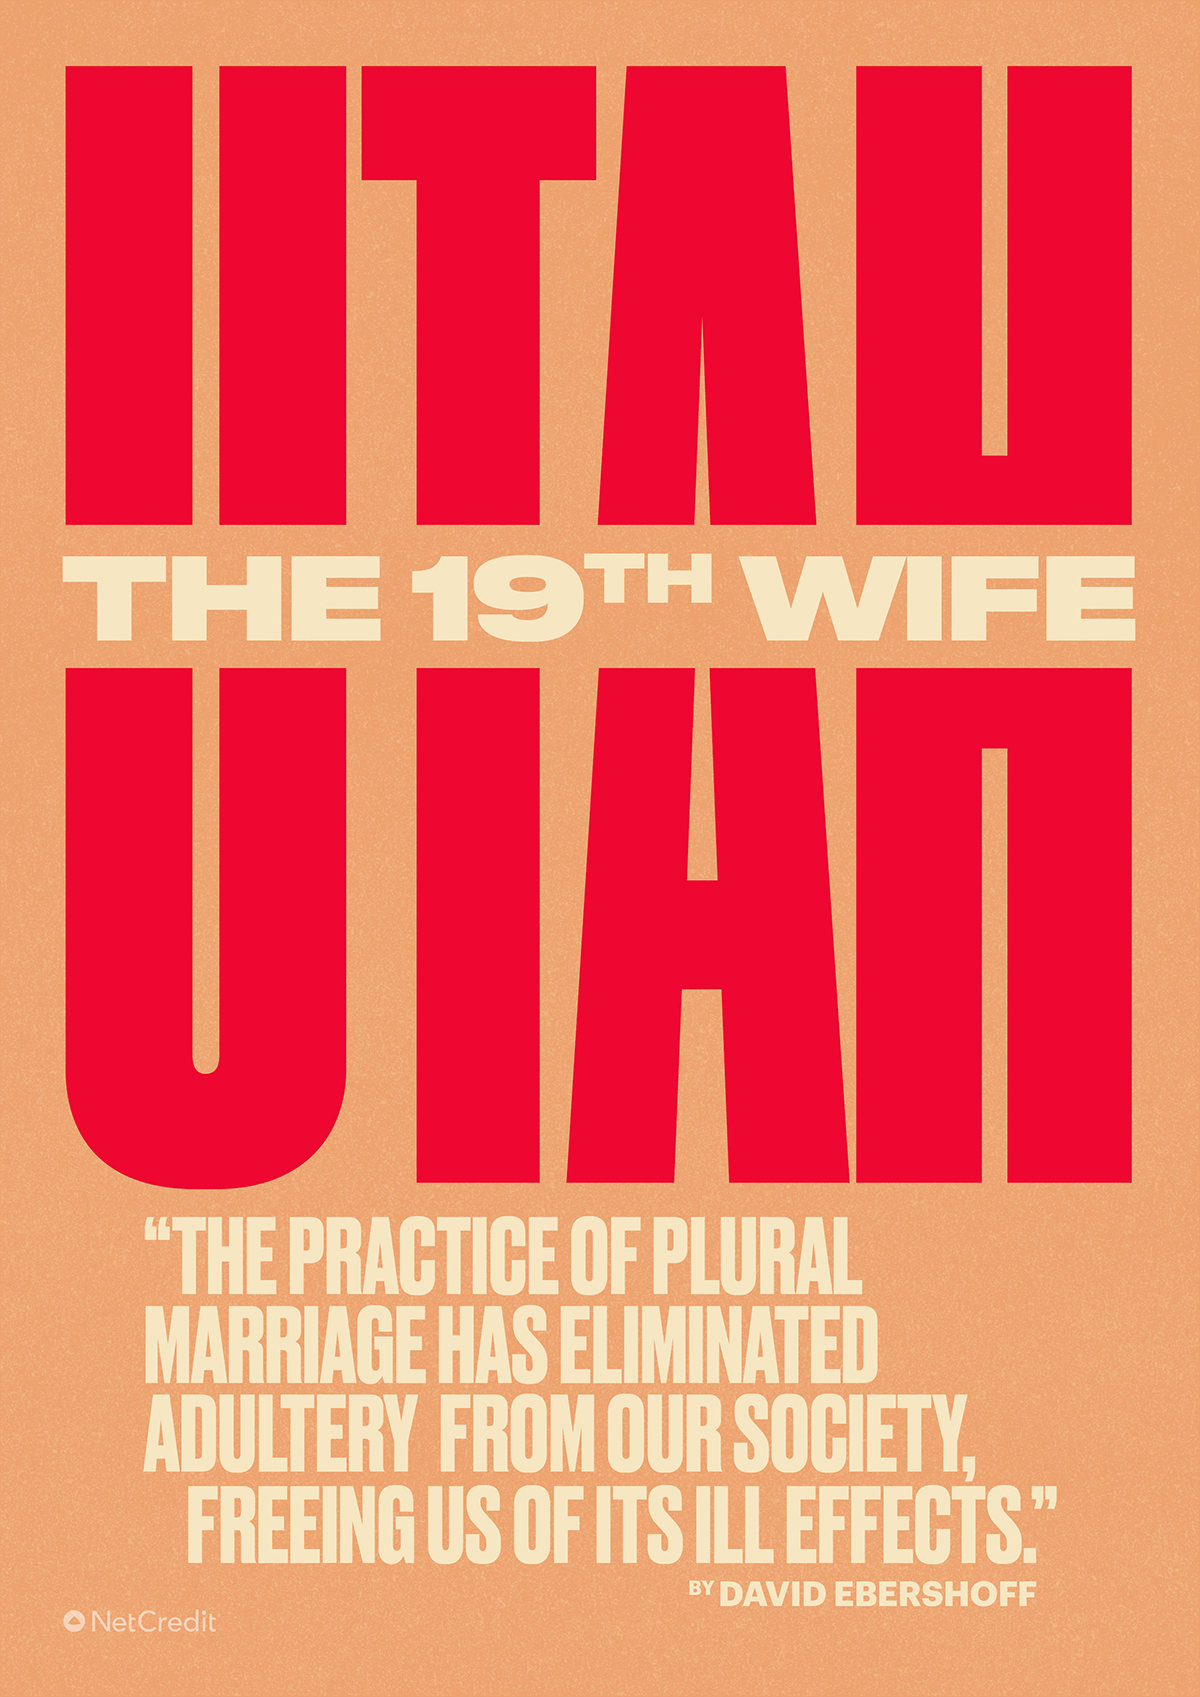 The 19th Wife Utah